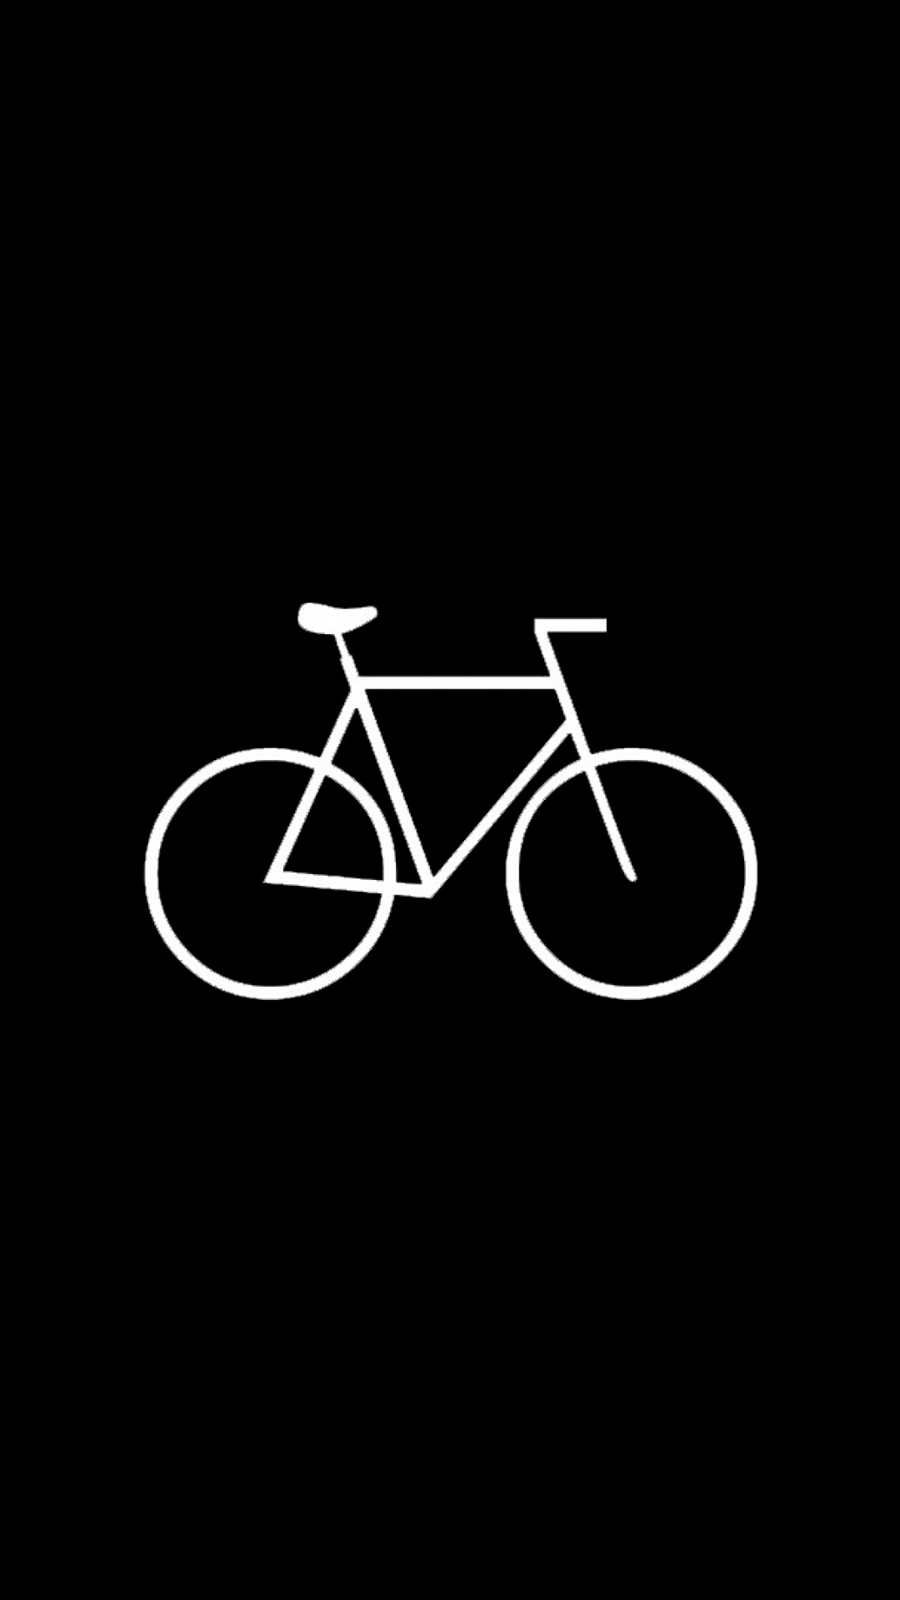 Flat Simple Bicycle Wallpapers Free Download For Mobile & Desktop